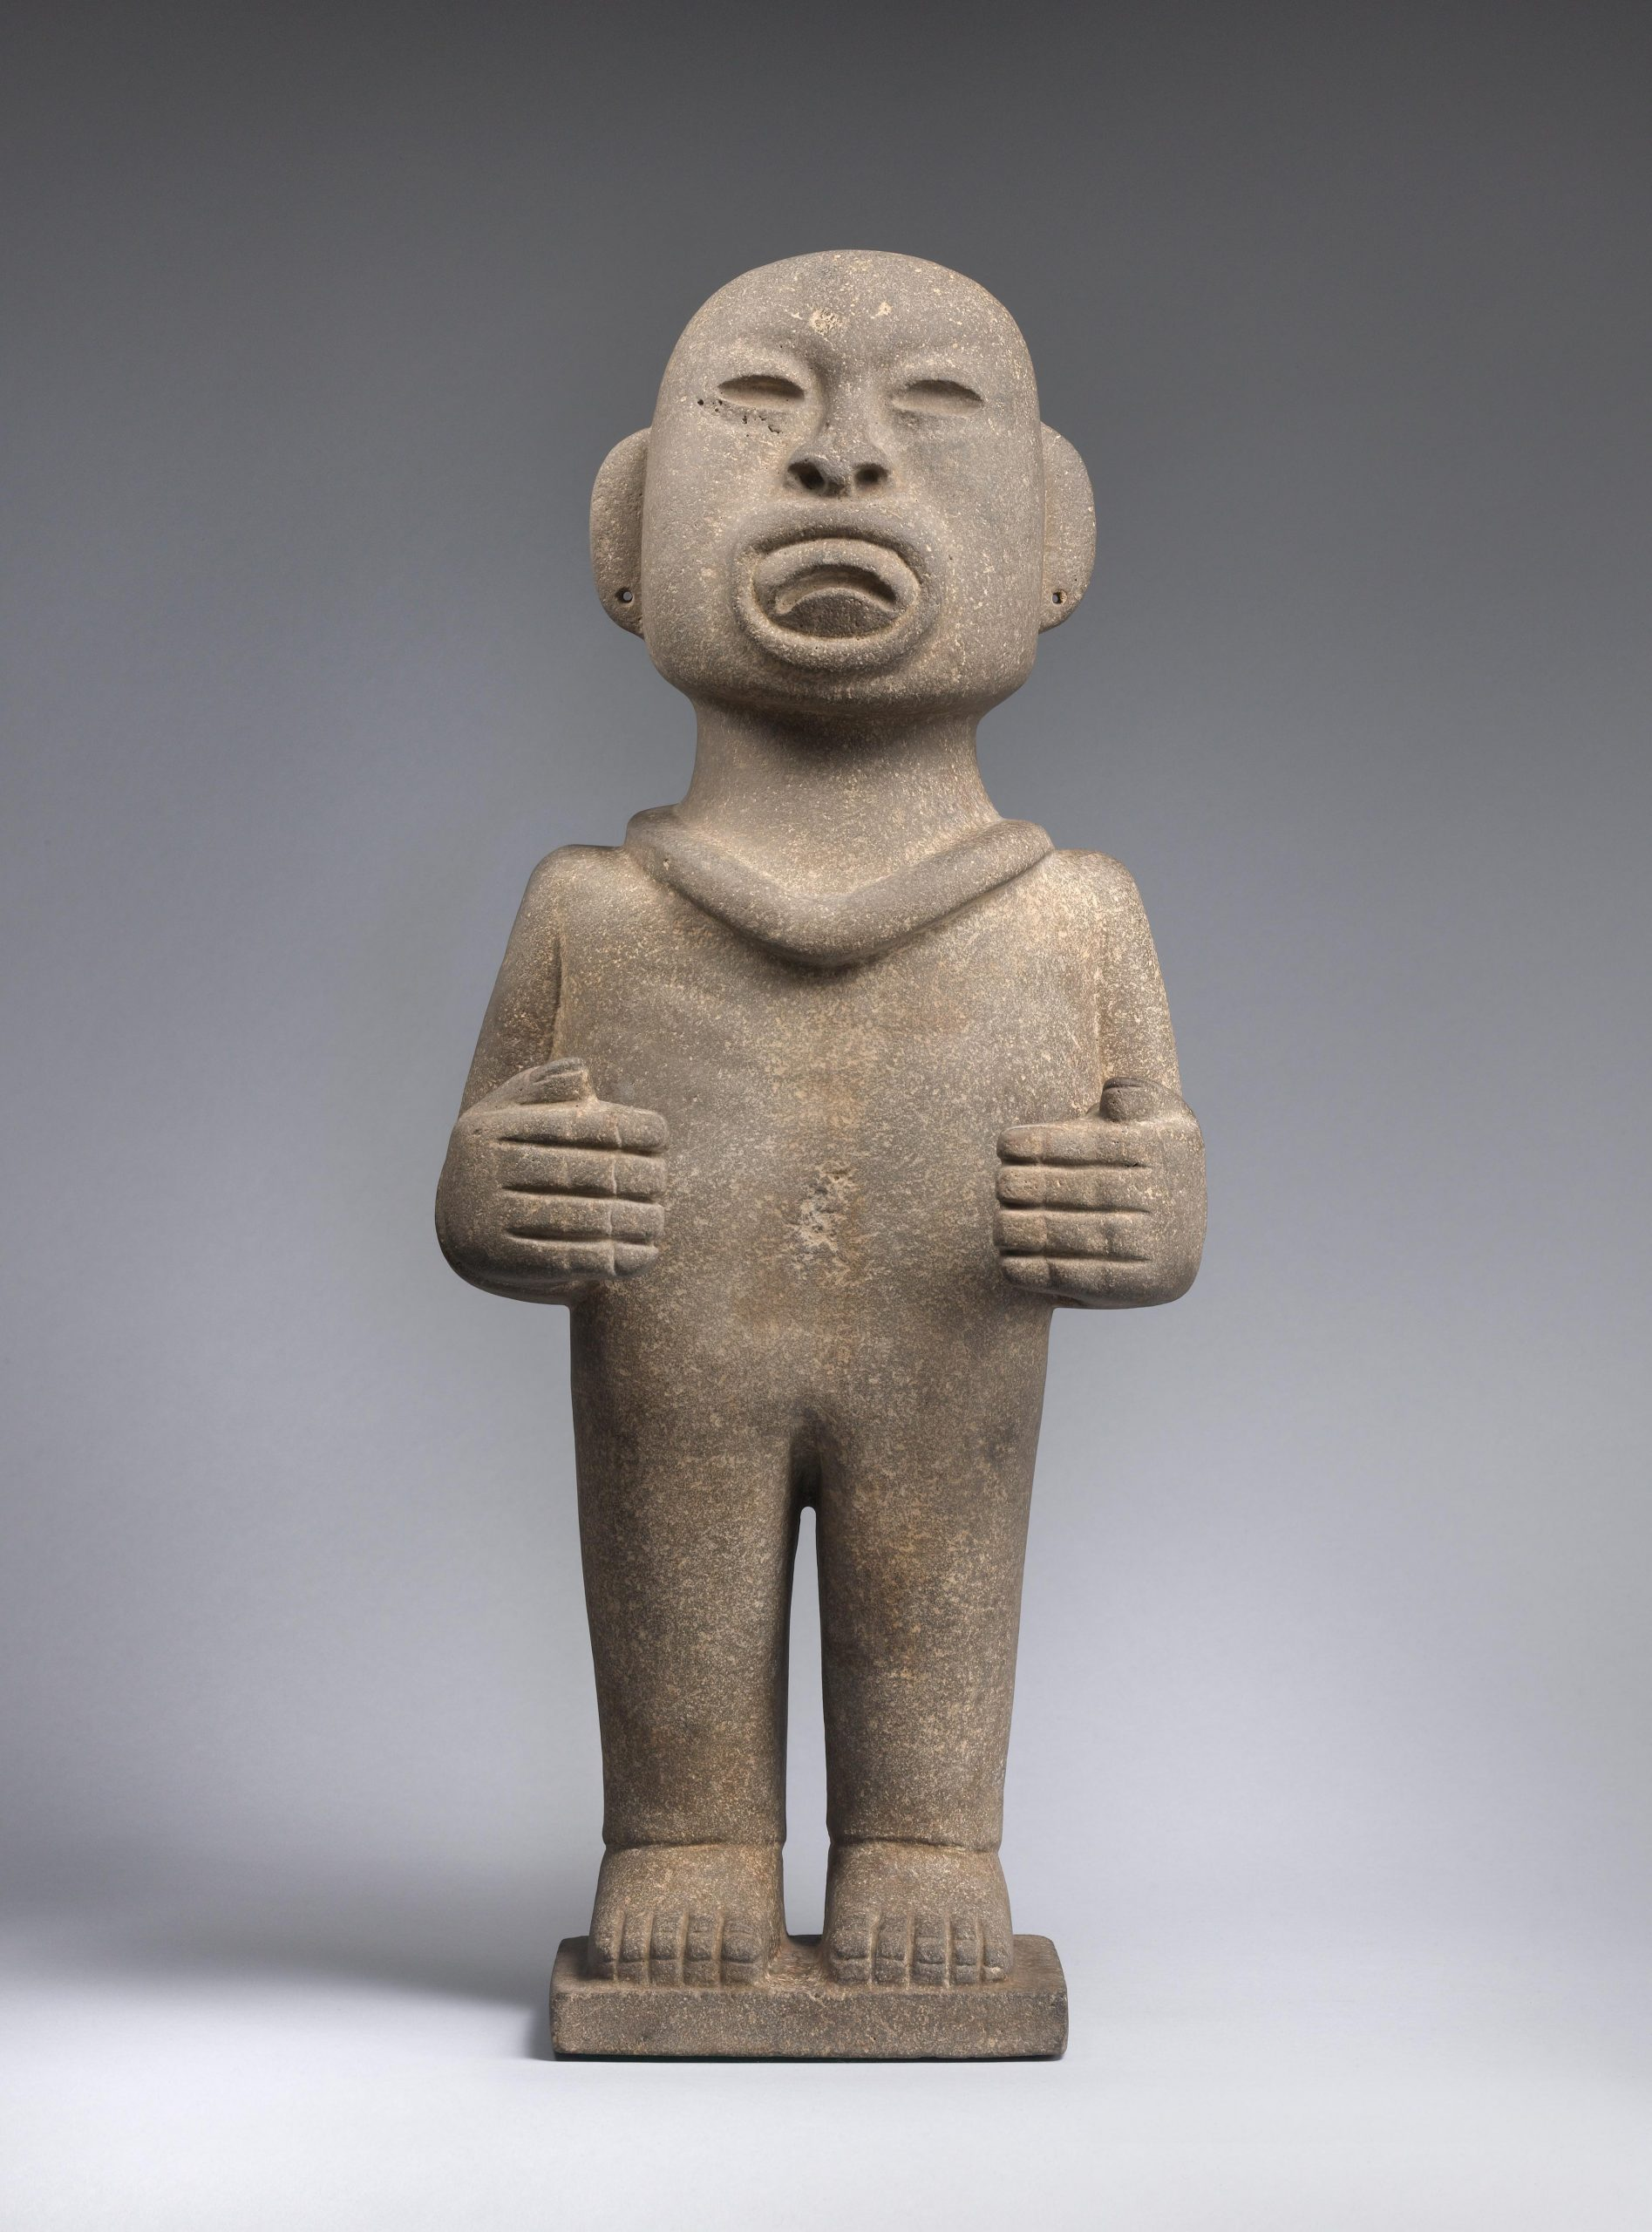 Gray standing stone figure with indented eyes and mouth, pierced ears, a bald head, and bent arms.